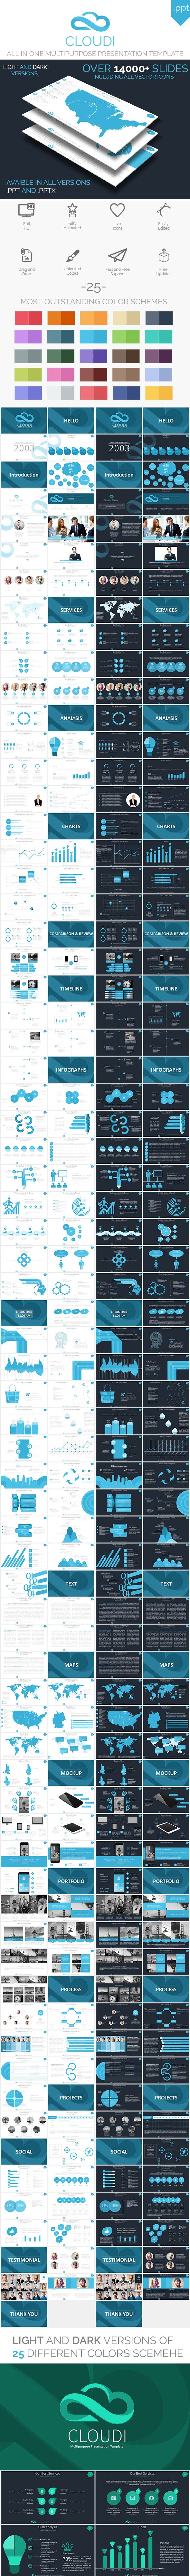 Cloudi - All in One Multipurpose Presentation - Business PowerPoint Templates